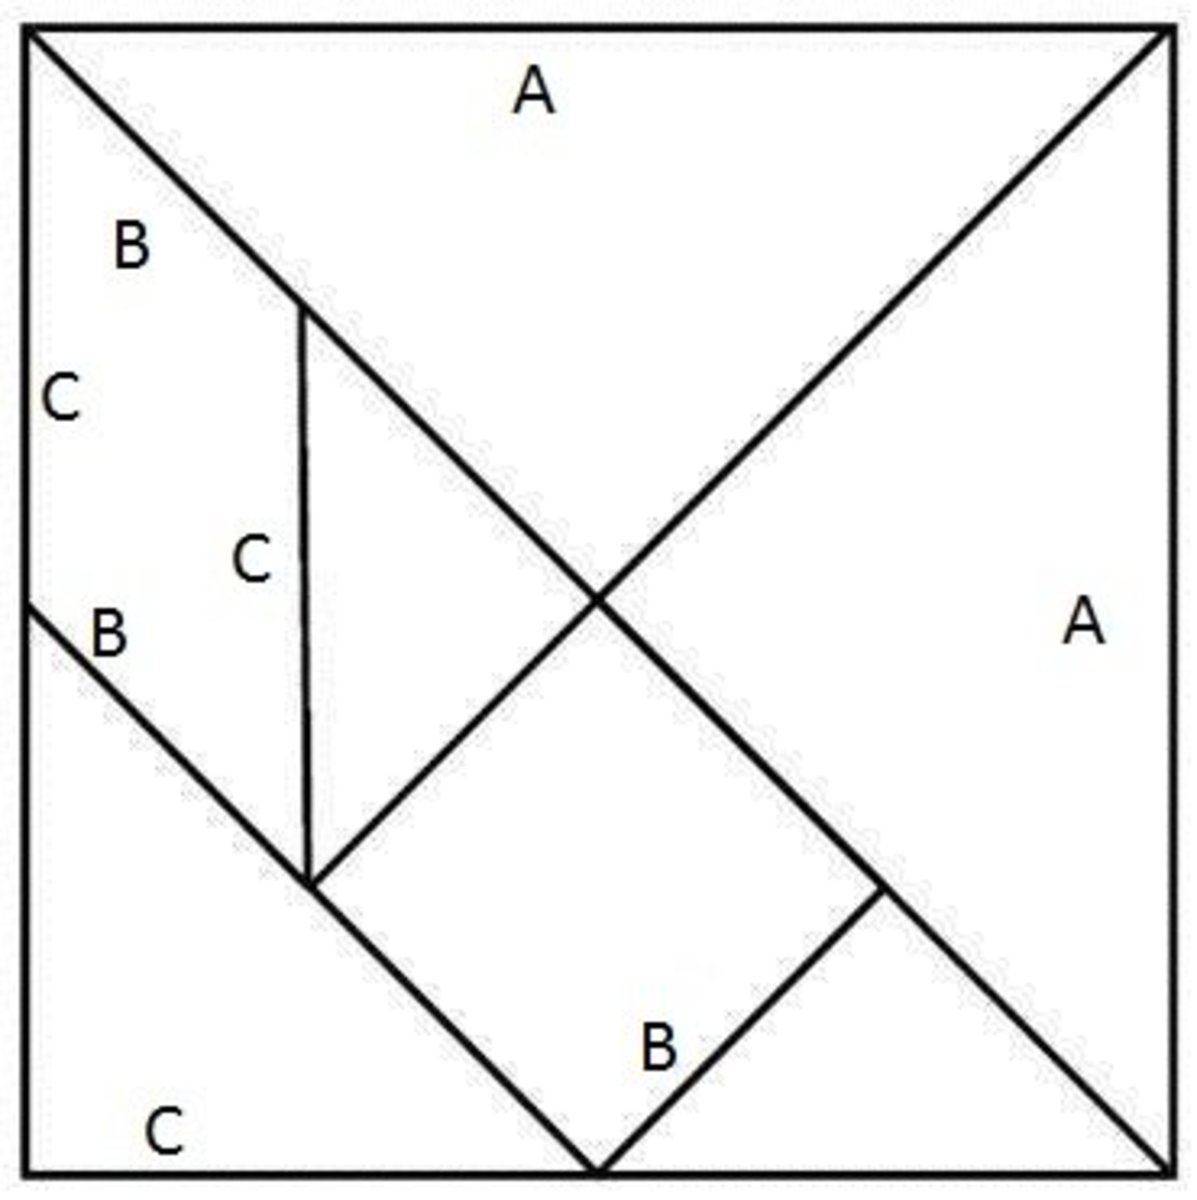 How To Make A Tangram Square The Chinese Puzzle Game